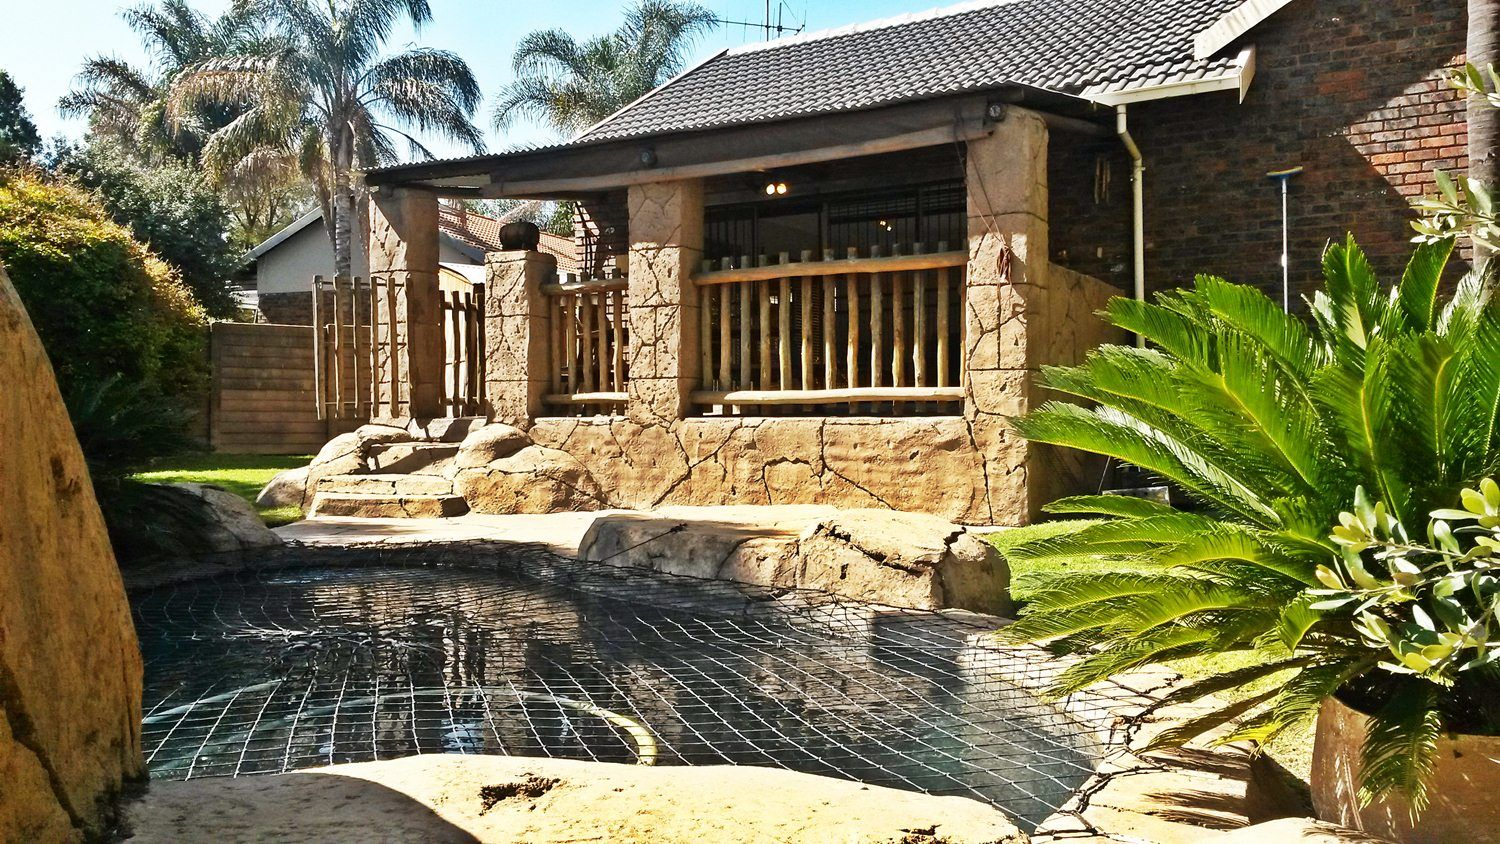 Centurion, Rooihuiskraal Property  | Houses For Sale Rooihuiskraal, ROOIHUISKRAAL, House 4 bedrooms property for sale Price:1,980,000